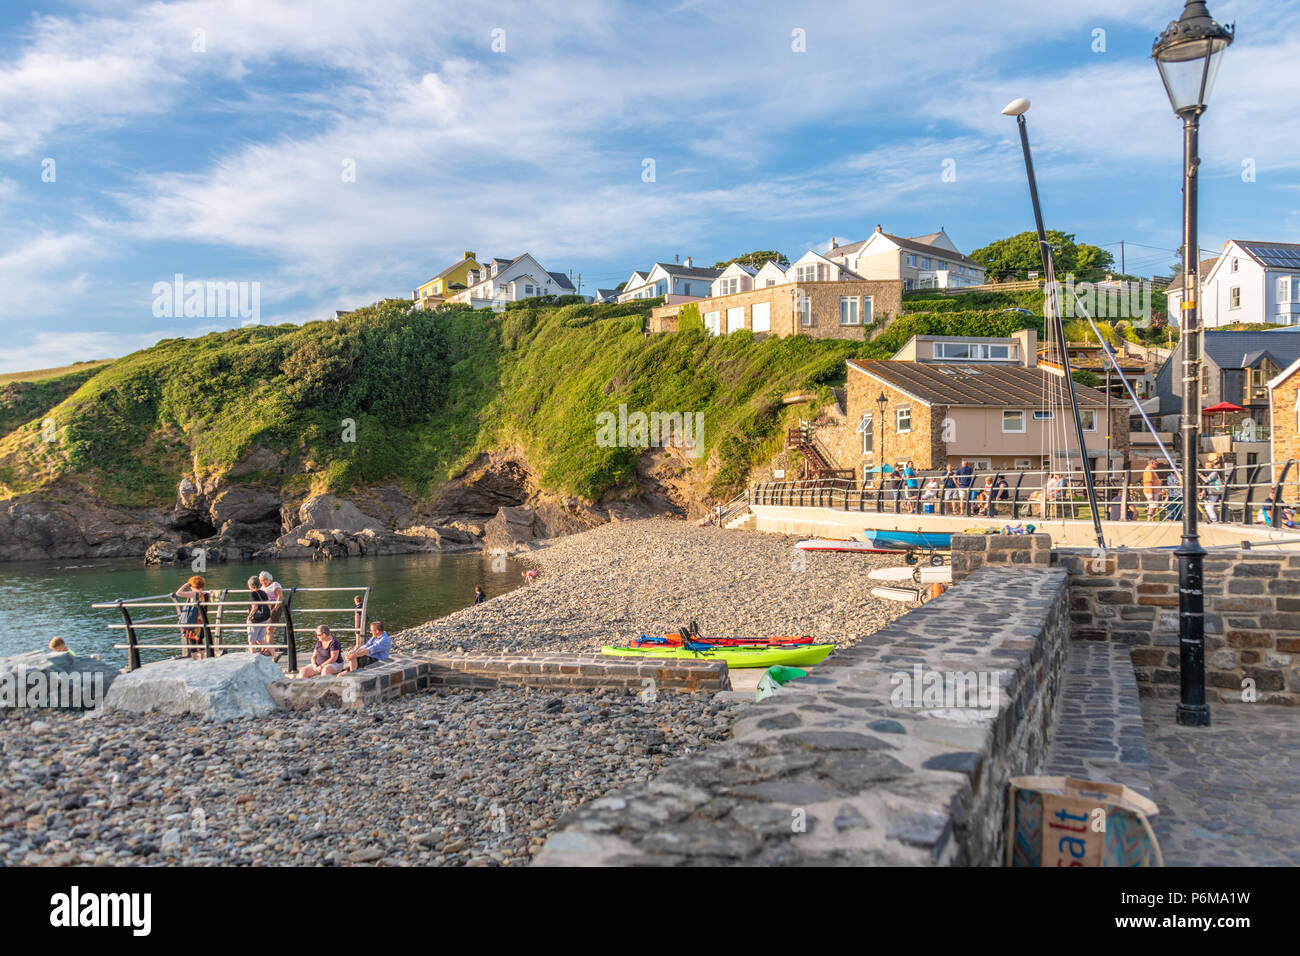 Broad Haven, Wales, UK. 30th June 2018. People enjoy the last of the June heatwave on the beach at Little Haven in South Wales. Credit Thomas Faull / Alamy Live News Stock Photo